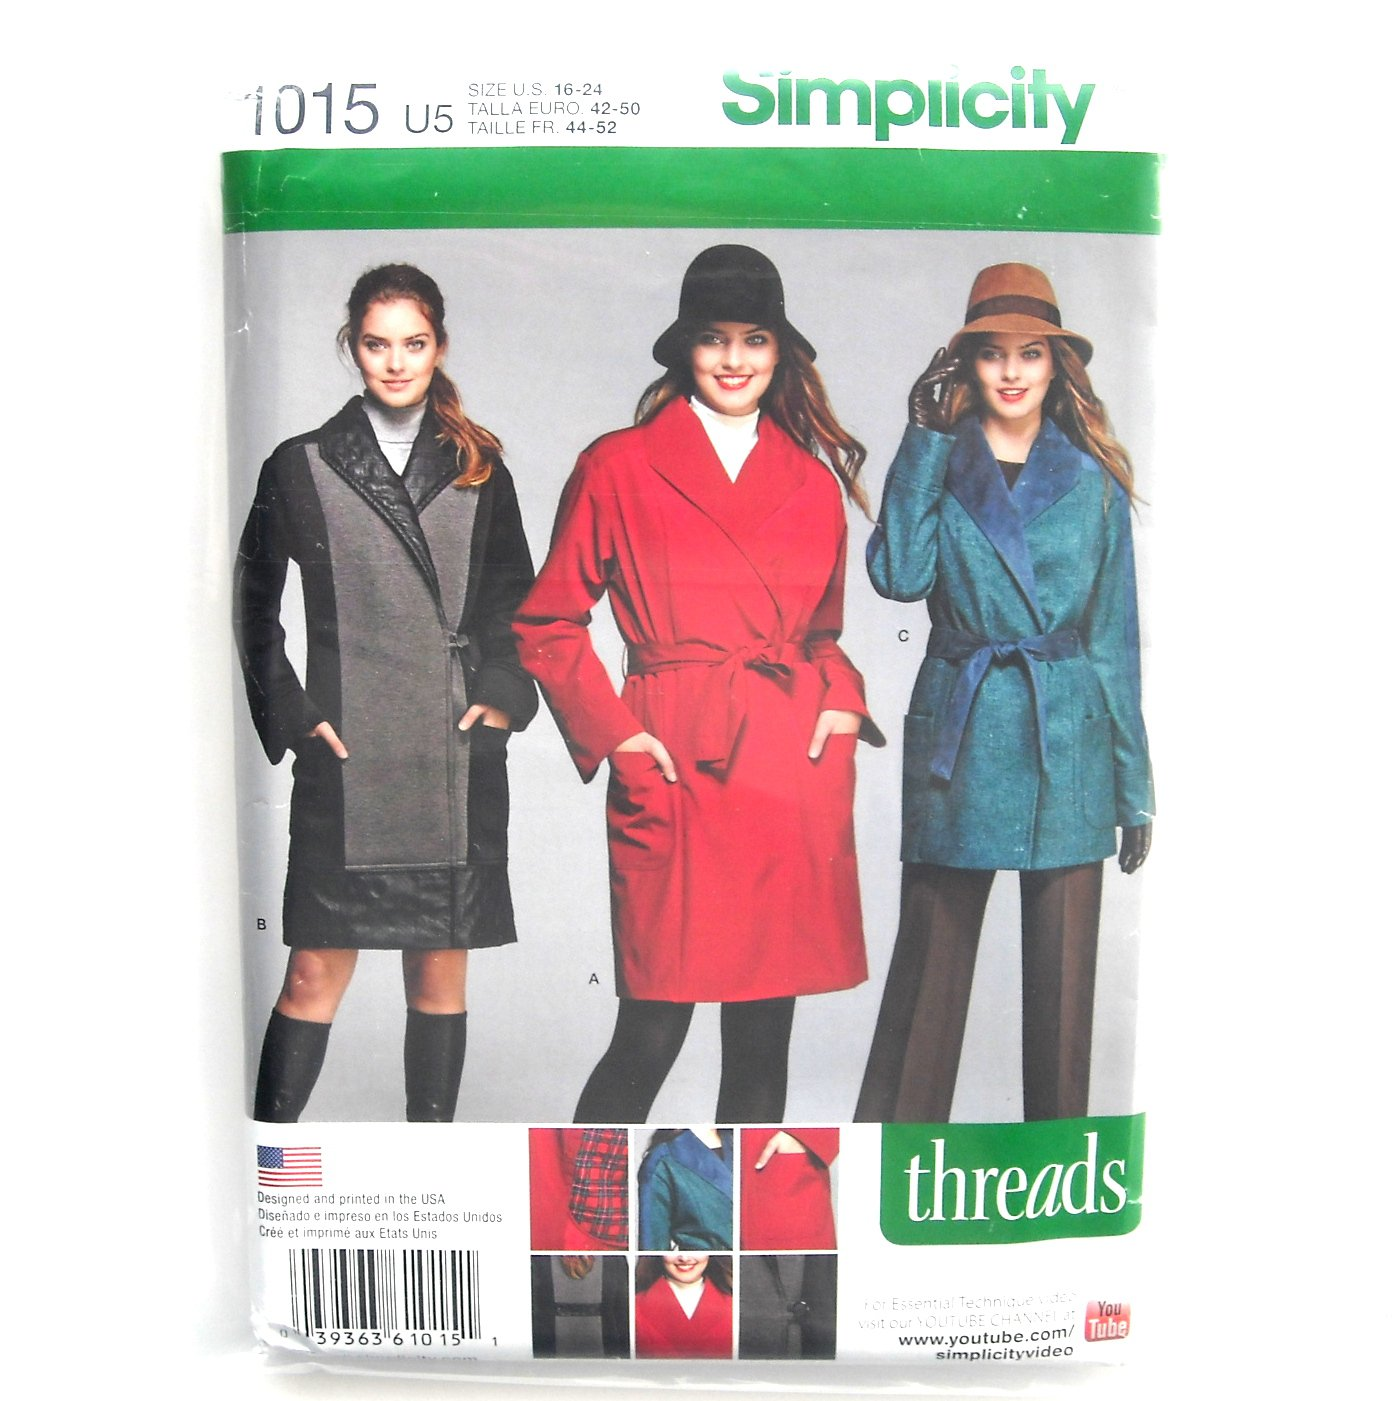 Misses Womens Coat Jackets 16 - 24 Threads Simplicity Sewing Pattern 1015